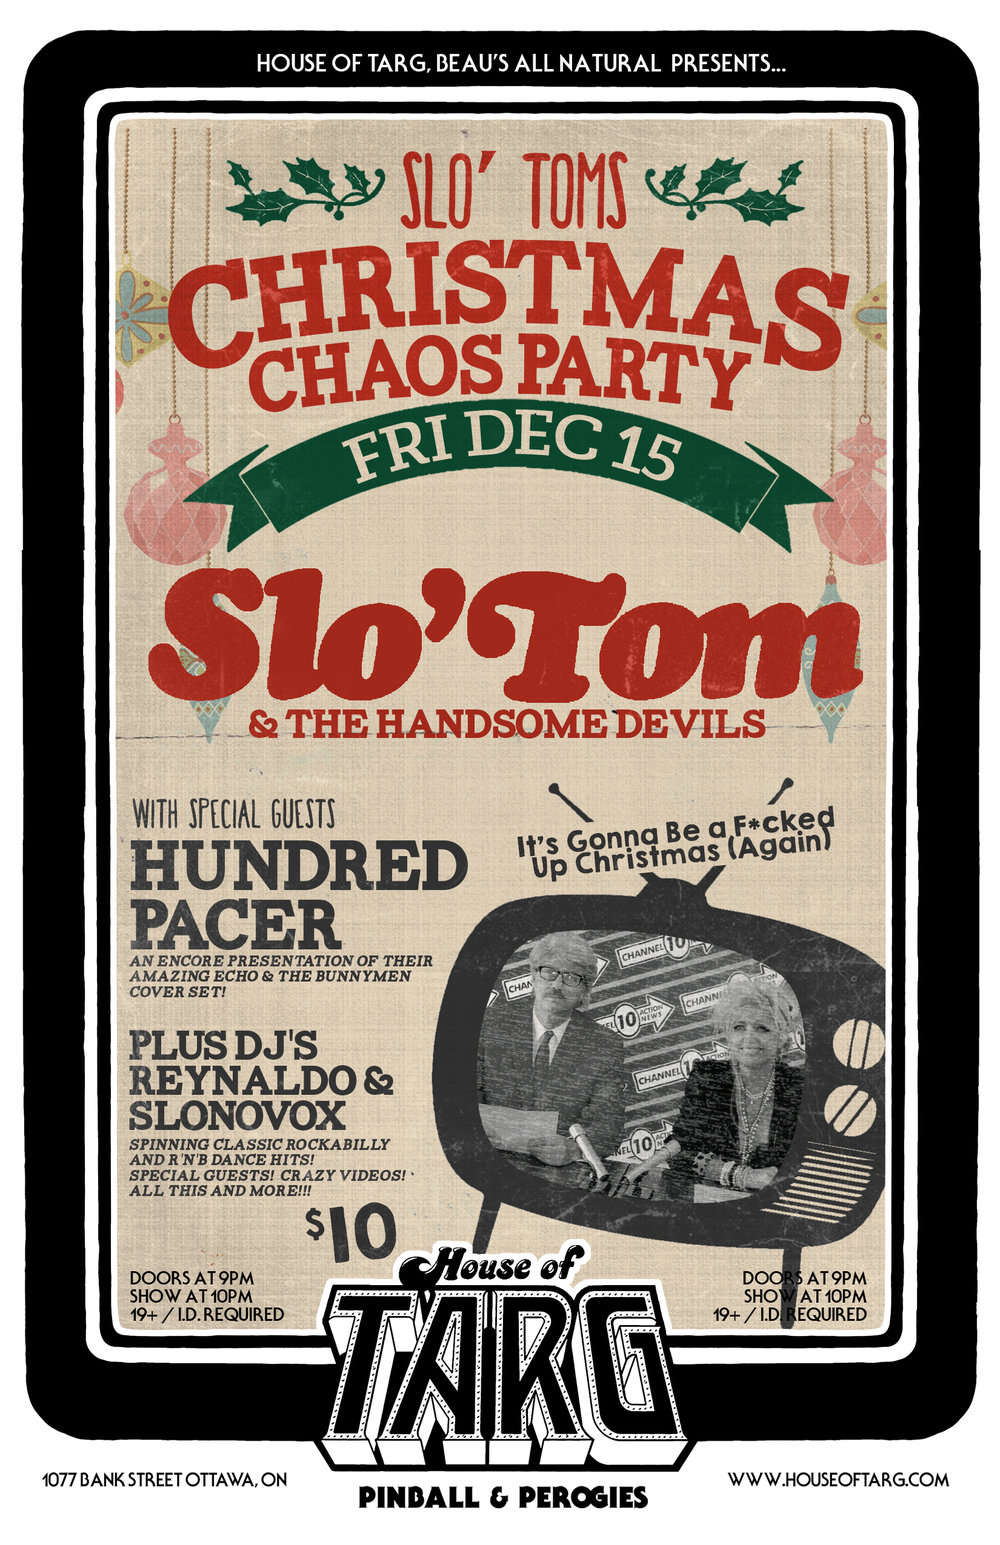 Fri Dec 15 SLO' TOM's CHRISTMAS CHAOS PARTY  A little bit country, A little bit Rock n Roll, A little bit dance party - a ton of fun. Ottawa Legend Slo' Tom is having an xmas party & you are invited.  more details here